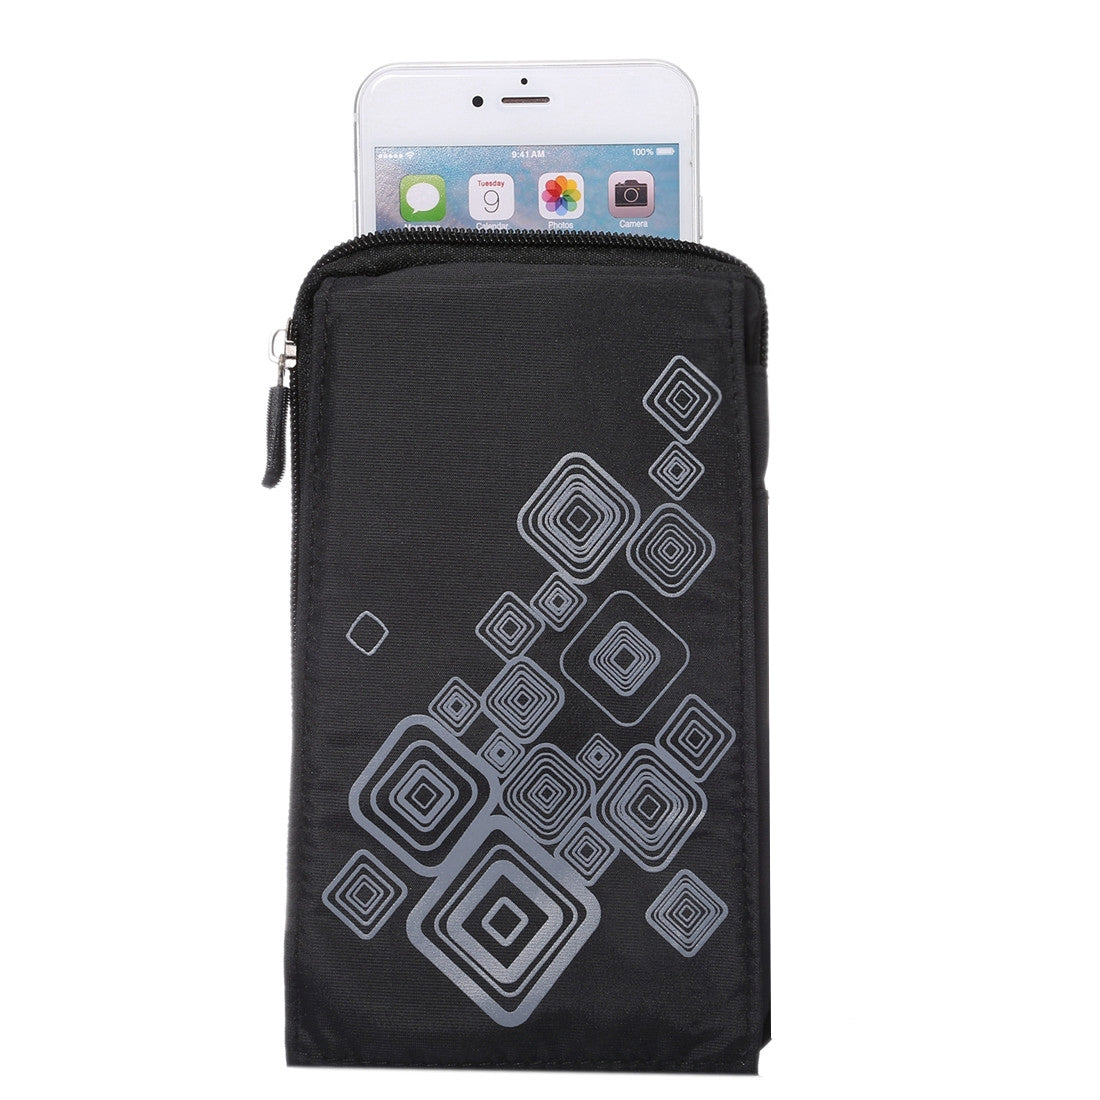 6.4 inch Multifunctional Square Pattern Canvas Sports Storage Waist Packs / Phone Cases / Hiking Bag / Camping Bag with Hanging Hook for iPhone 6S Plus / 7 Plus / Galaxy S7 Edge / Galaxy Note 8(Black)